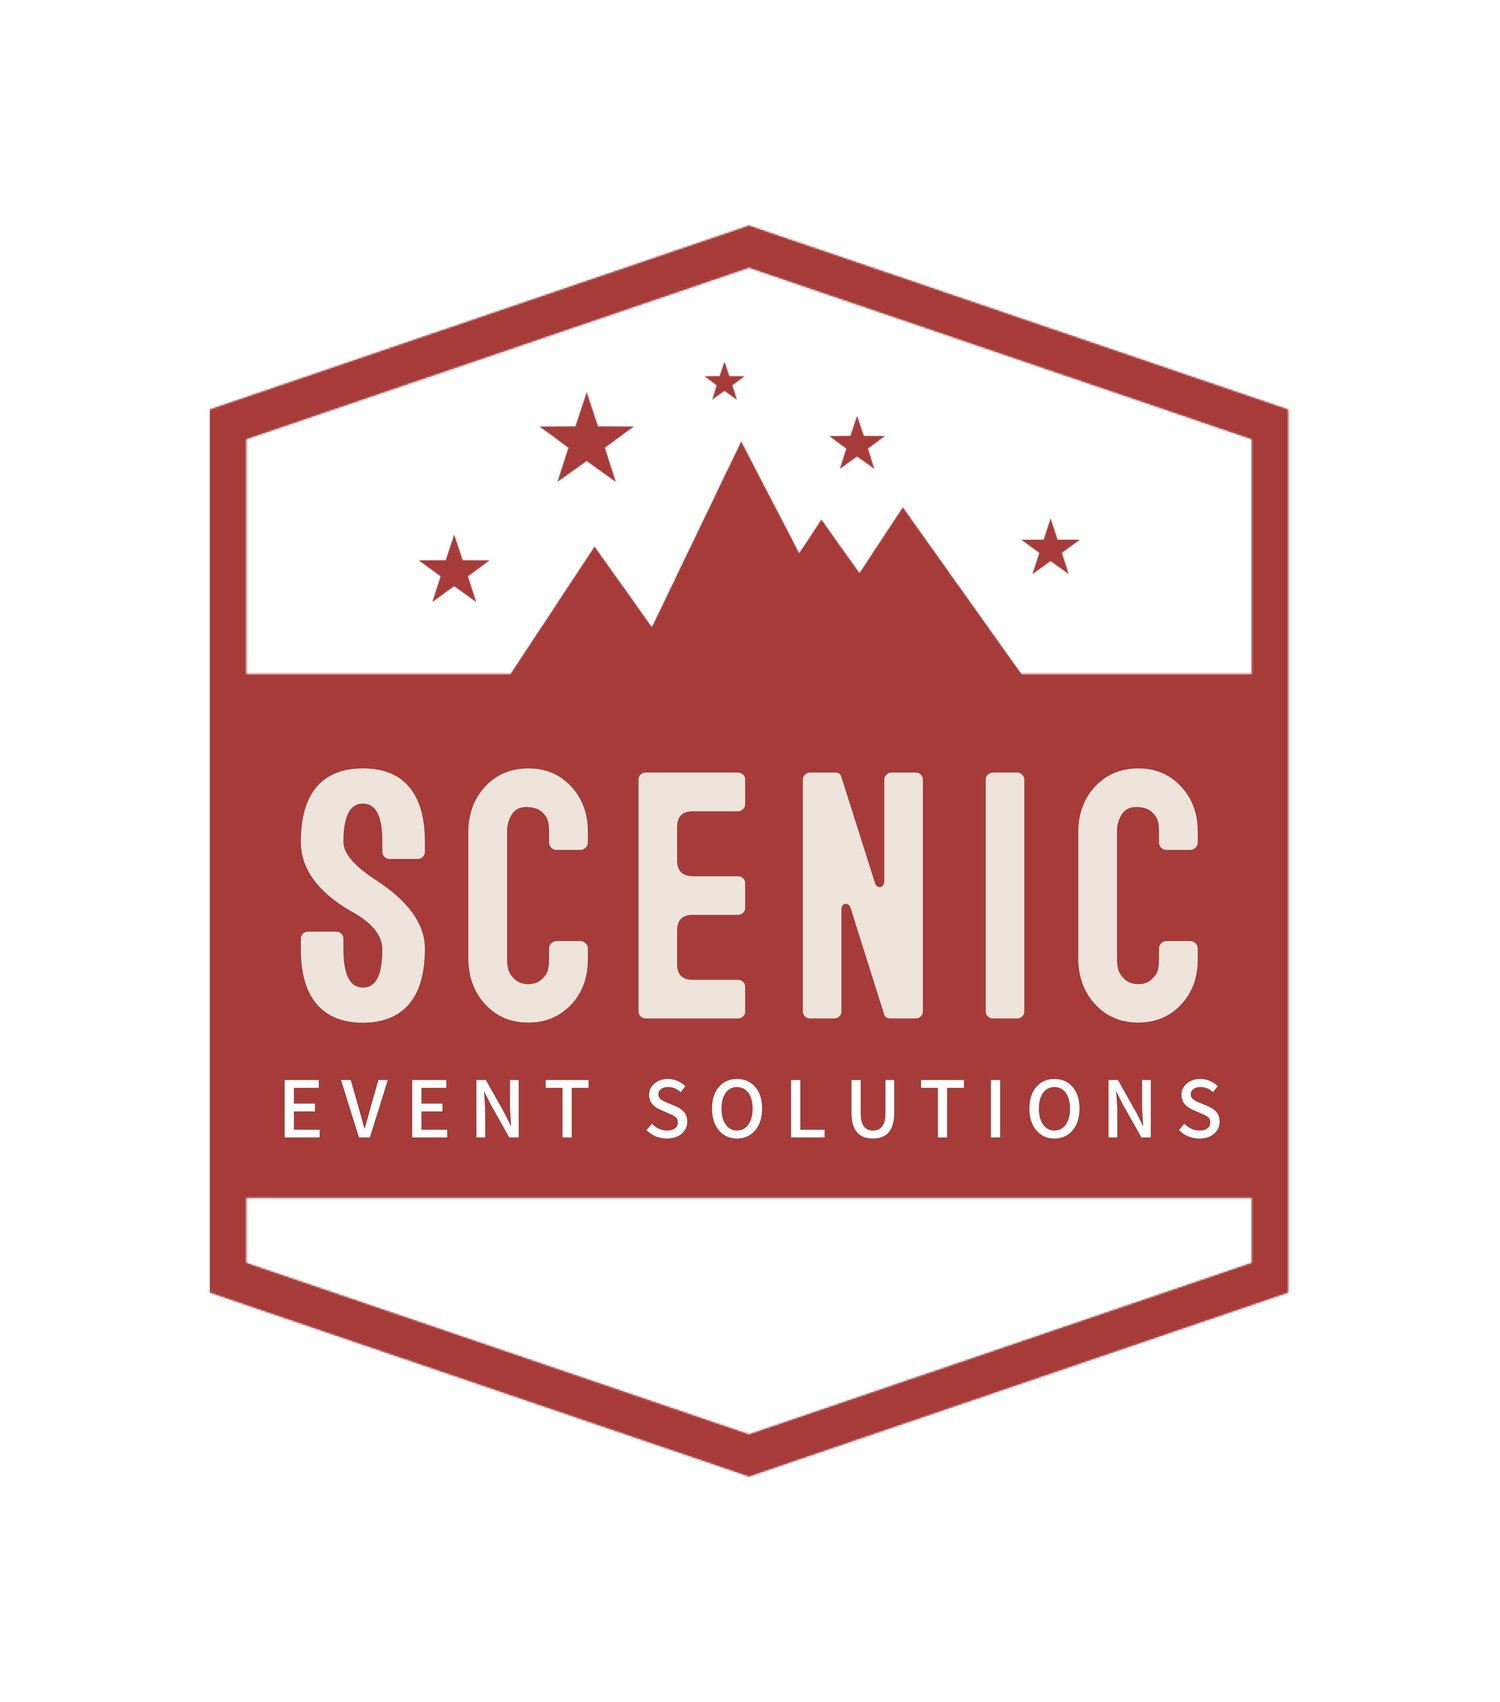 Scenic Event Solutions